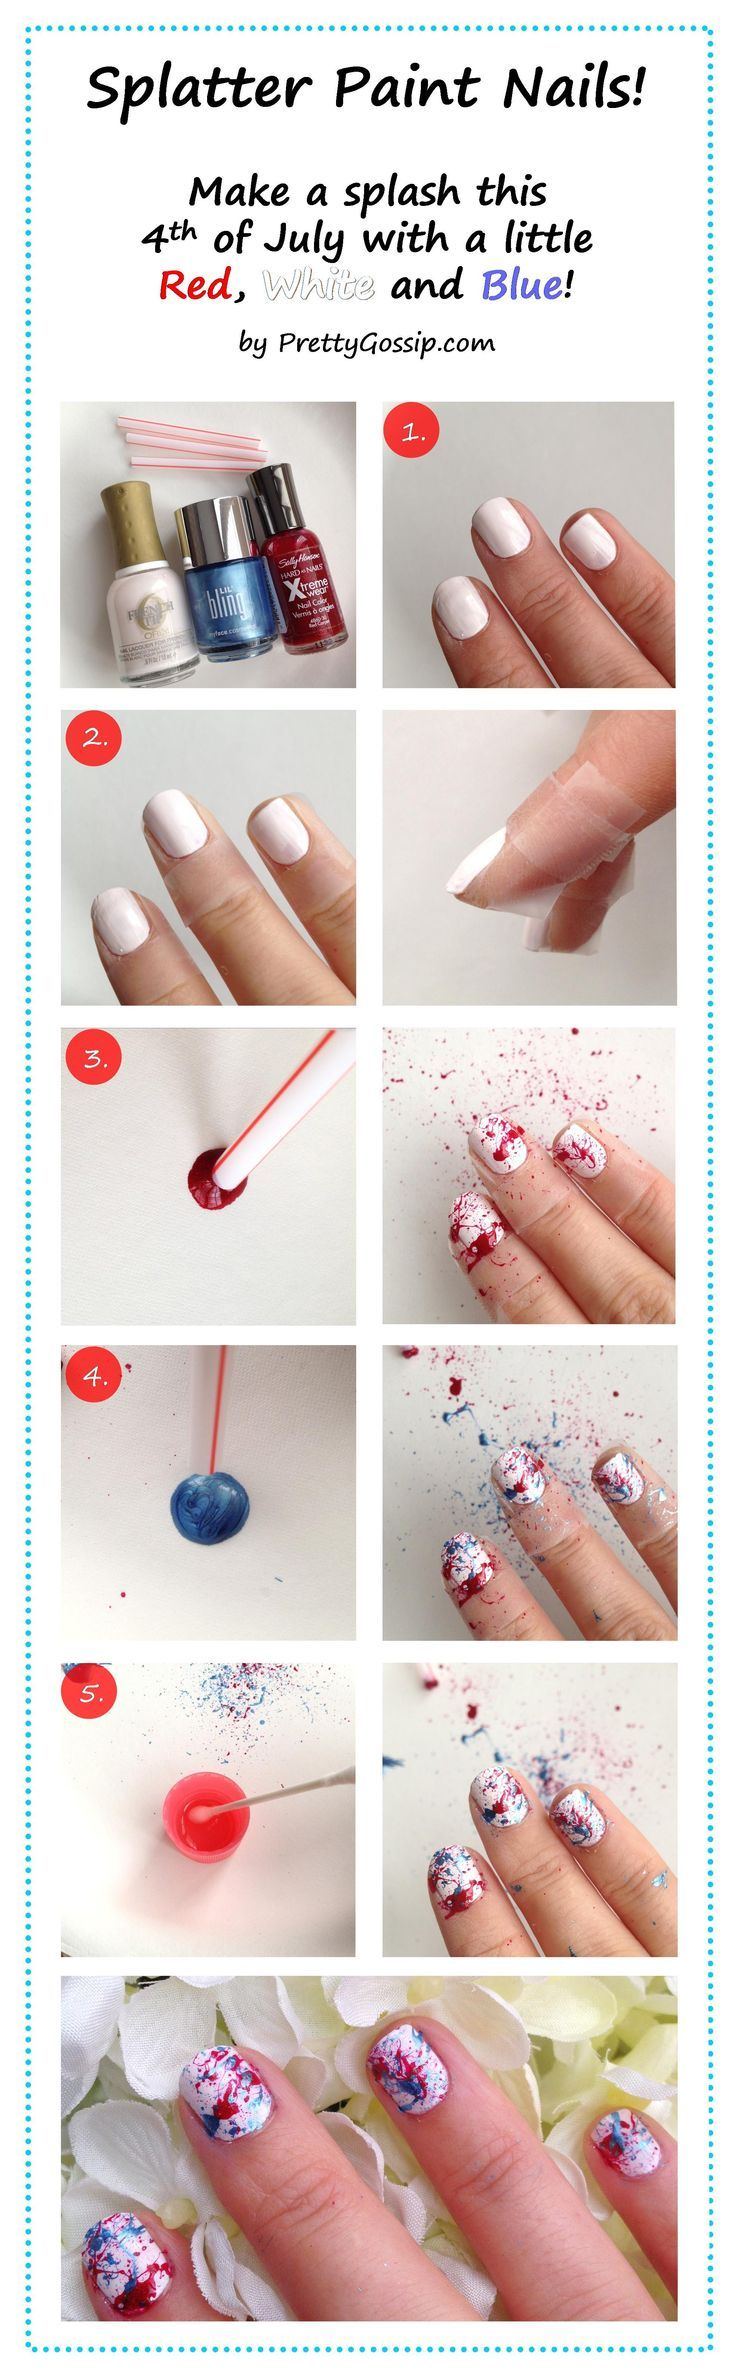 30 best Nail Art Designs images on Pinterest | Nail scissors, Nail ...